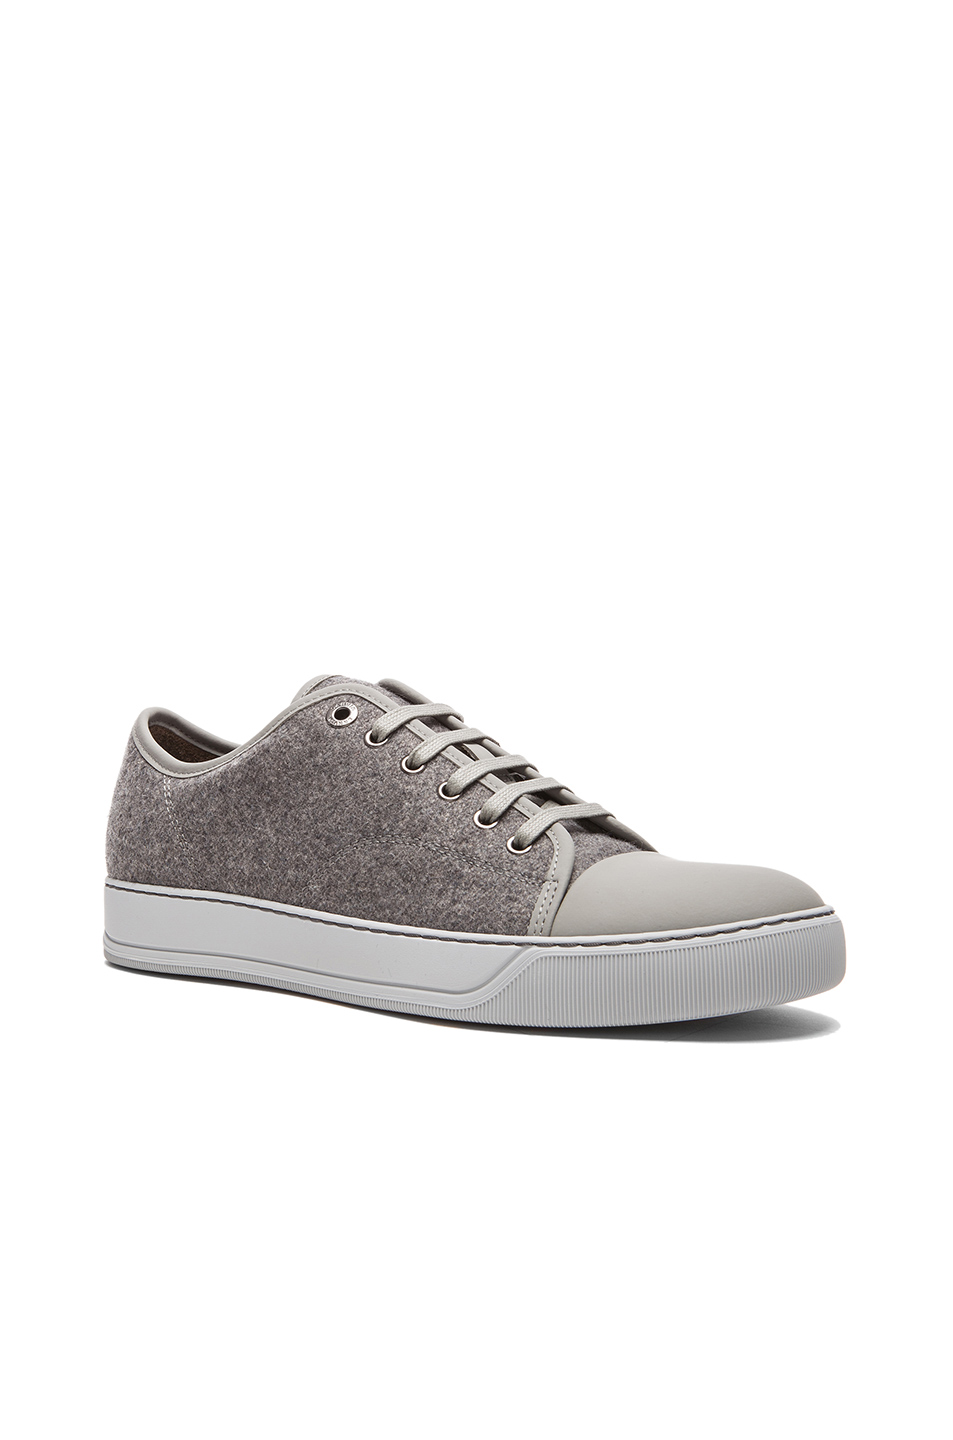 Lanvin Felt and Calfskin Low Top Sneaker in Gray